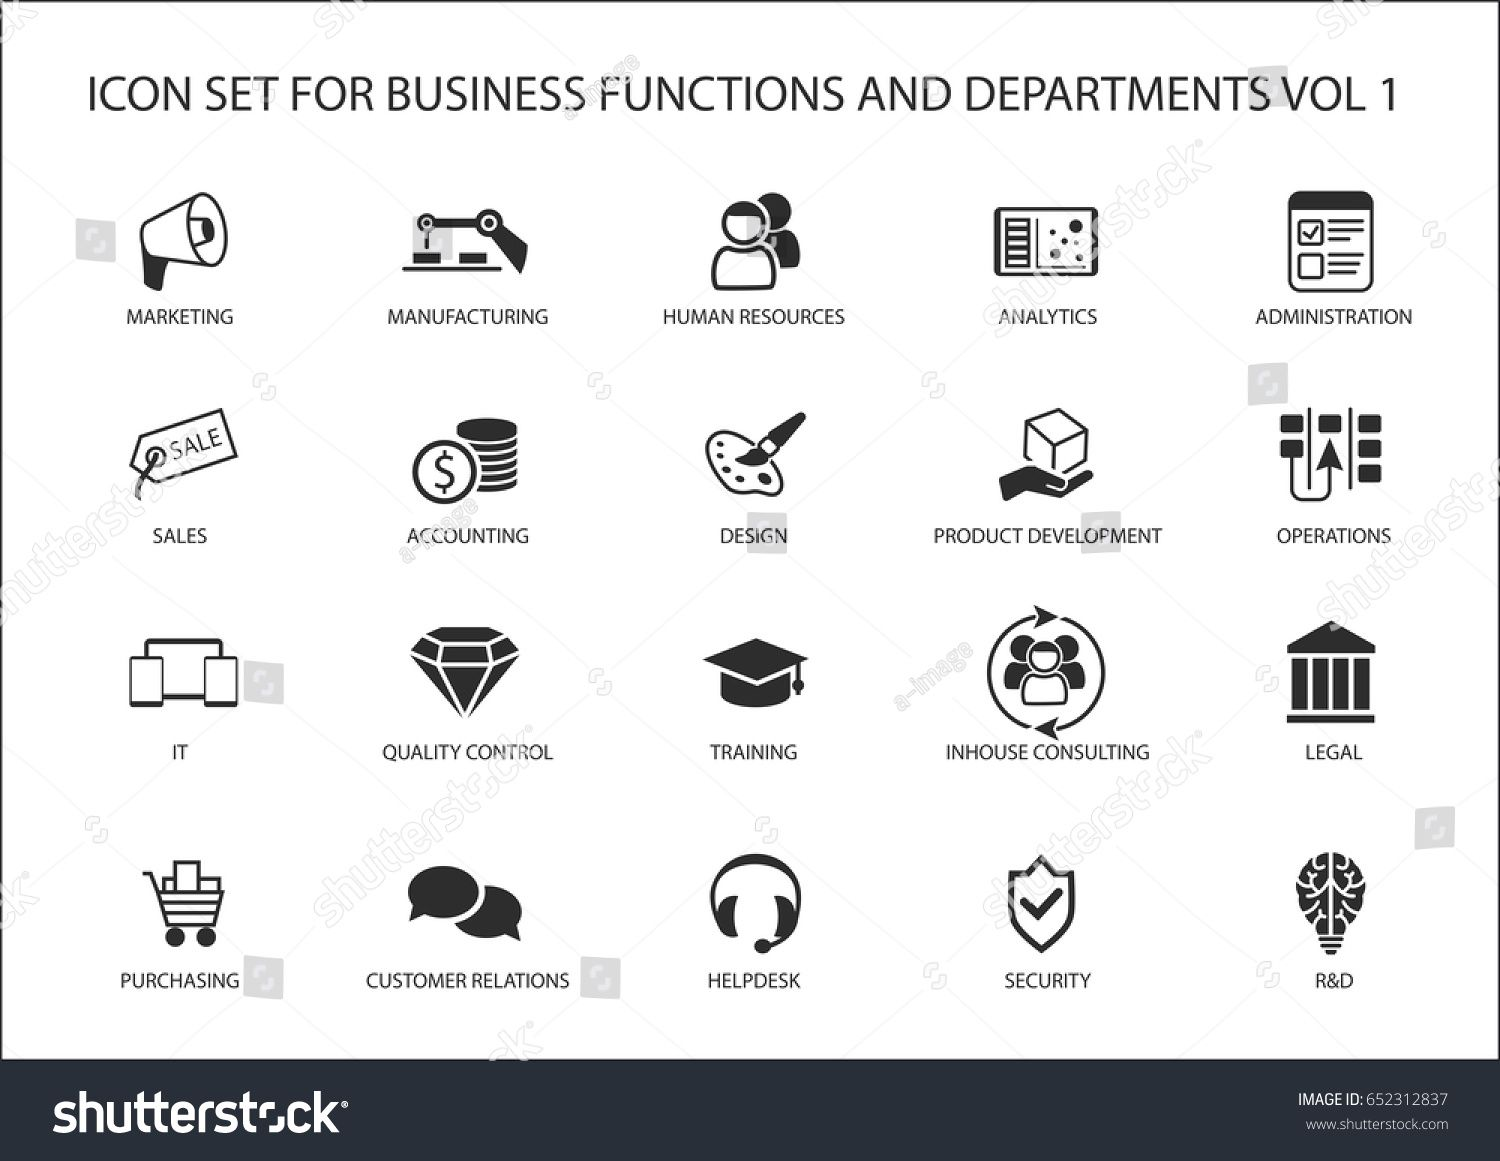 Various Business Functions And Business Department Vector Icons Like Sales Marketing Human Resources R D Accountin Ad In 2020 Human Resources Business Marketing